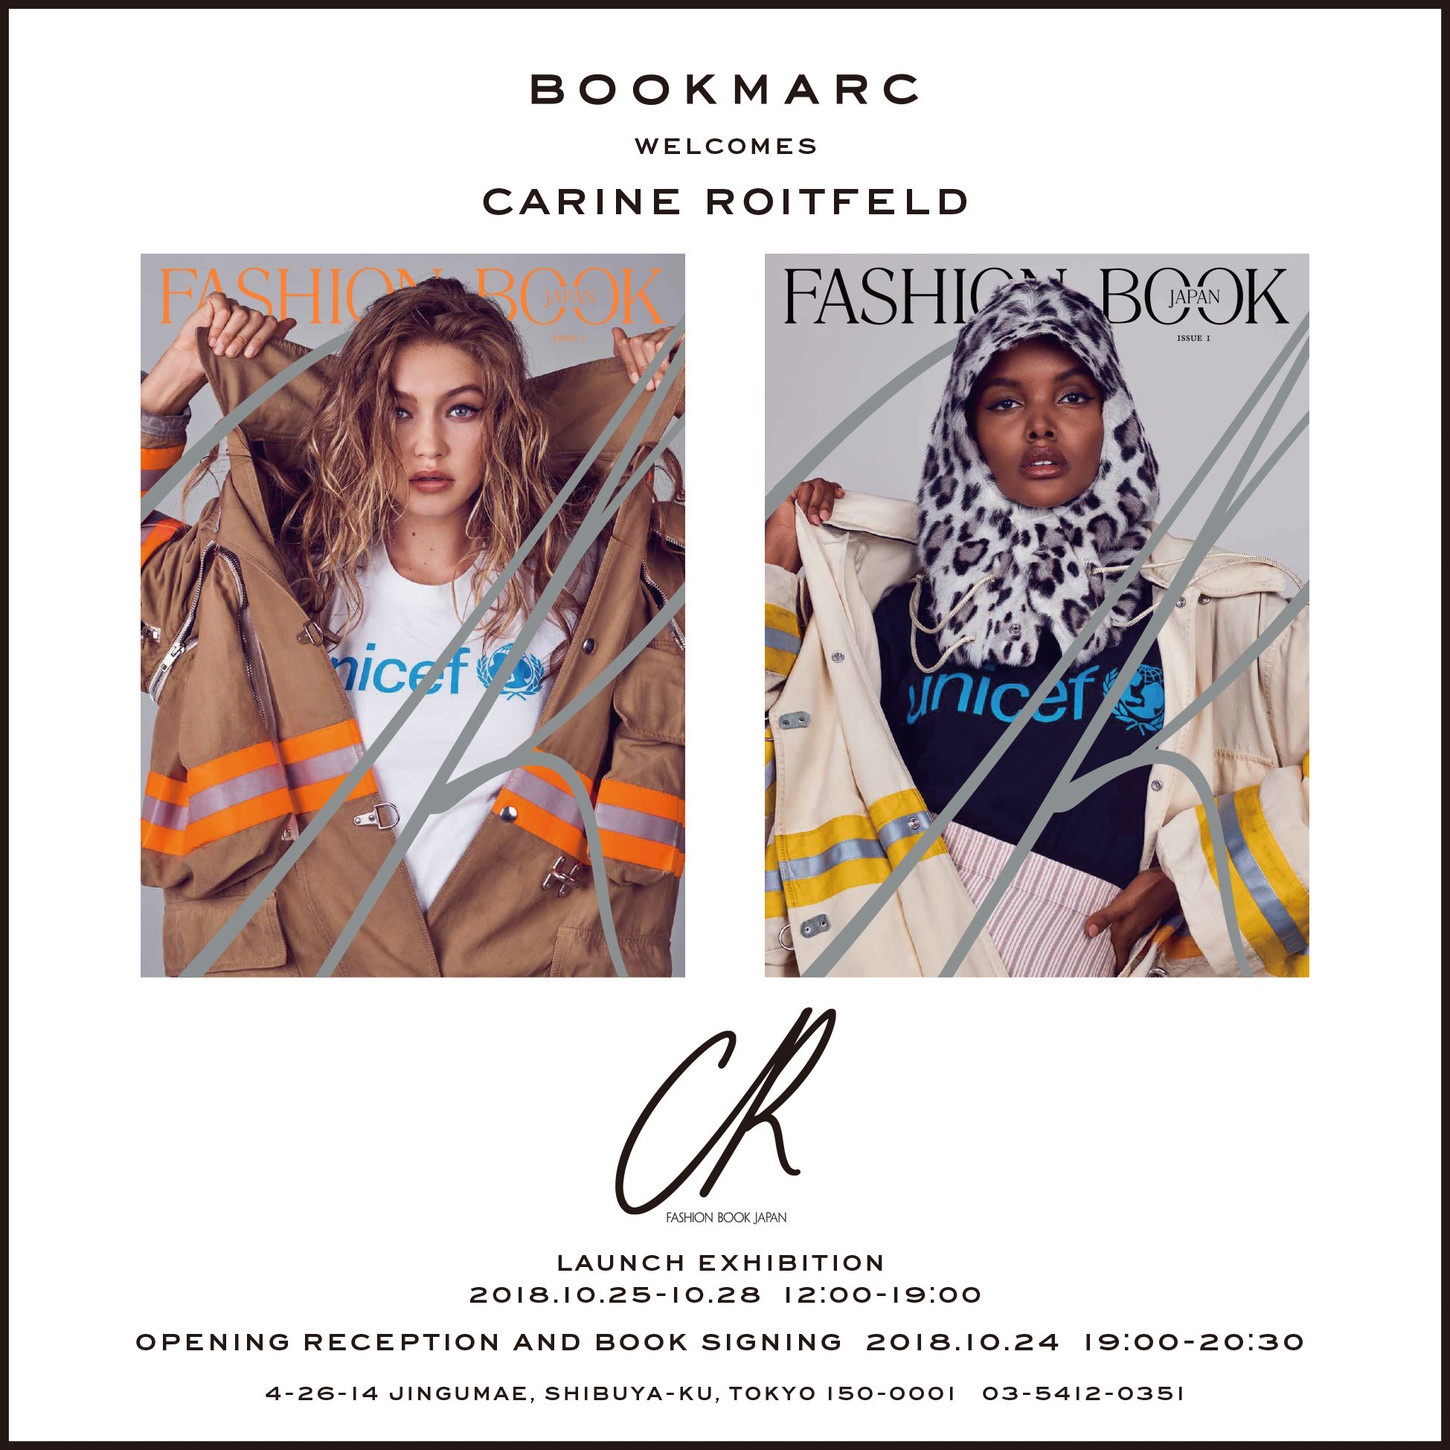 CR FASHION BOOK JAPAN